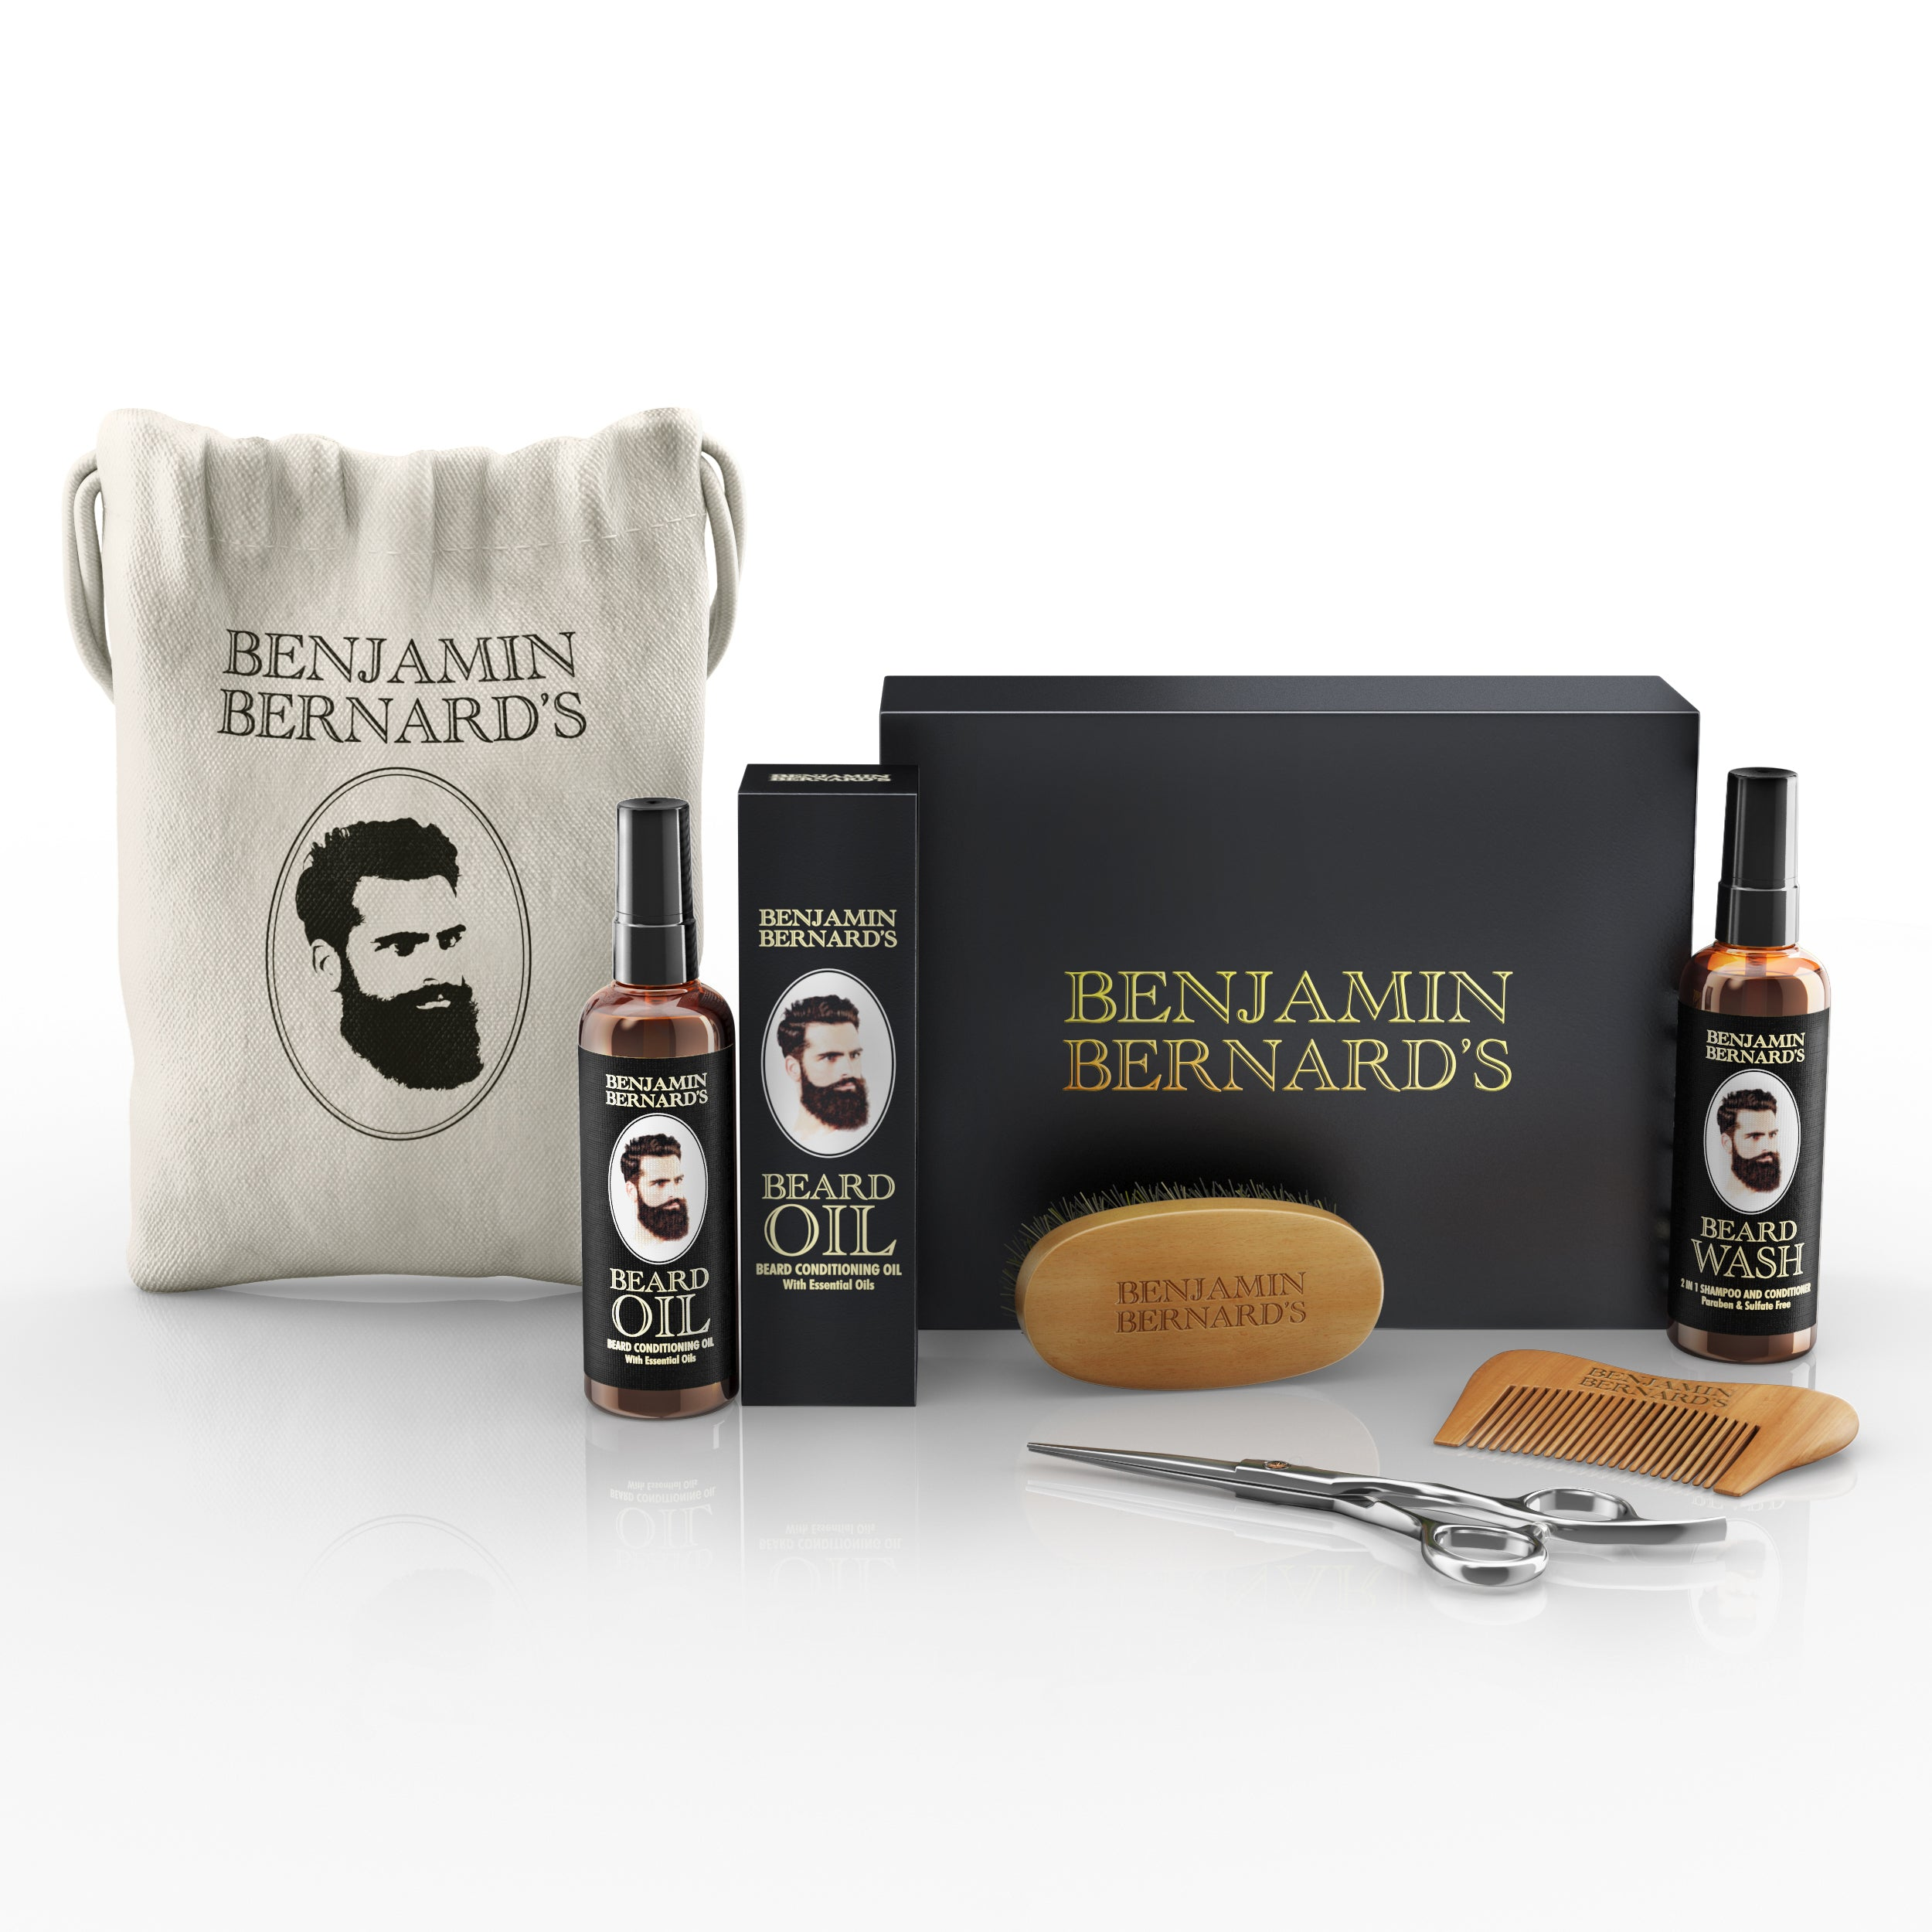 Beard Grooming Kit by Benjamin Bernard